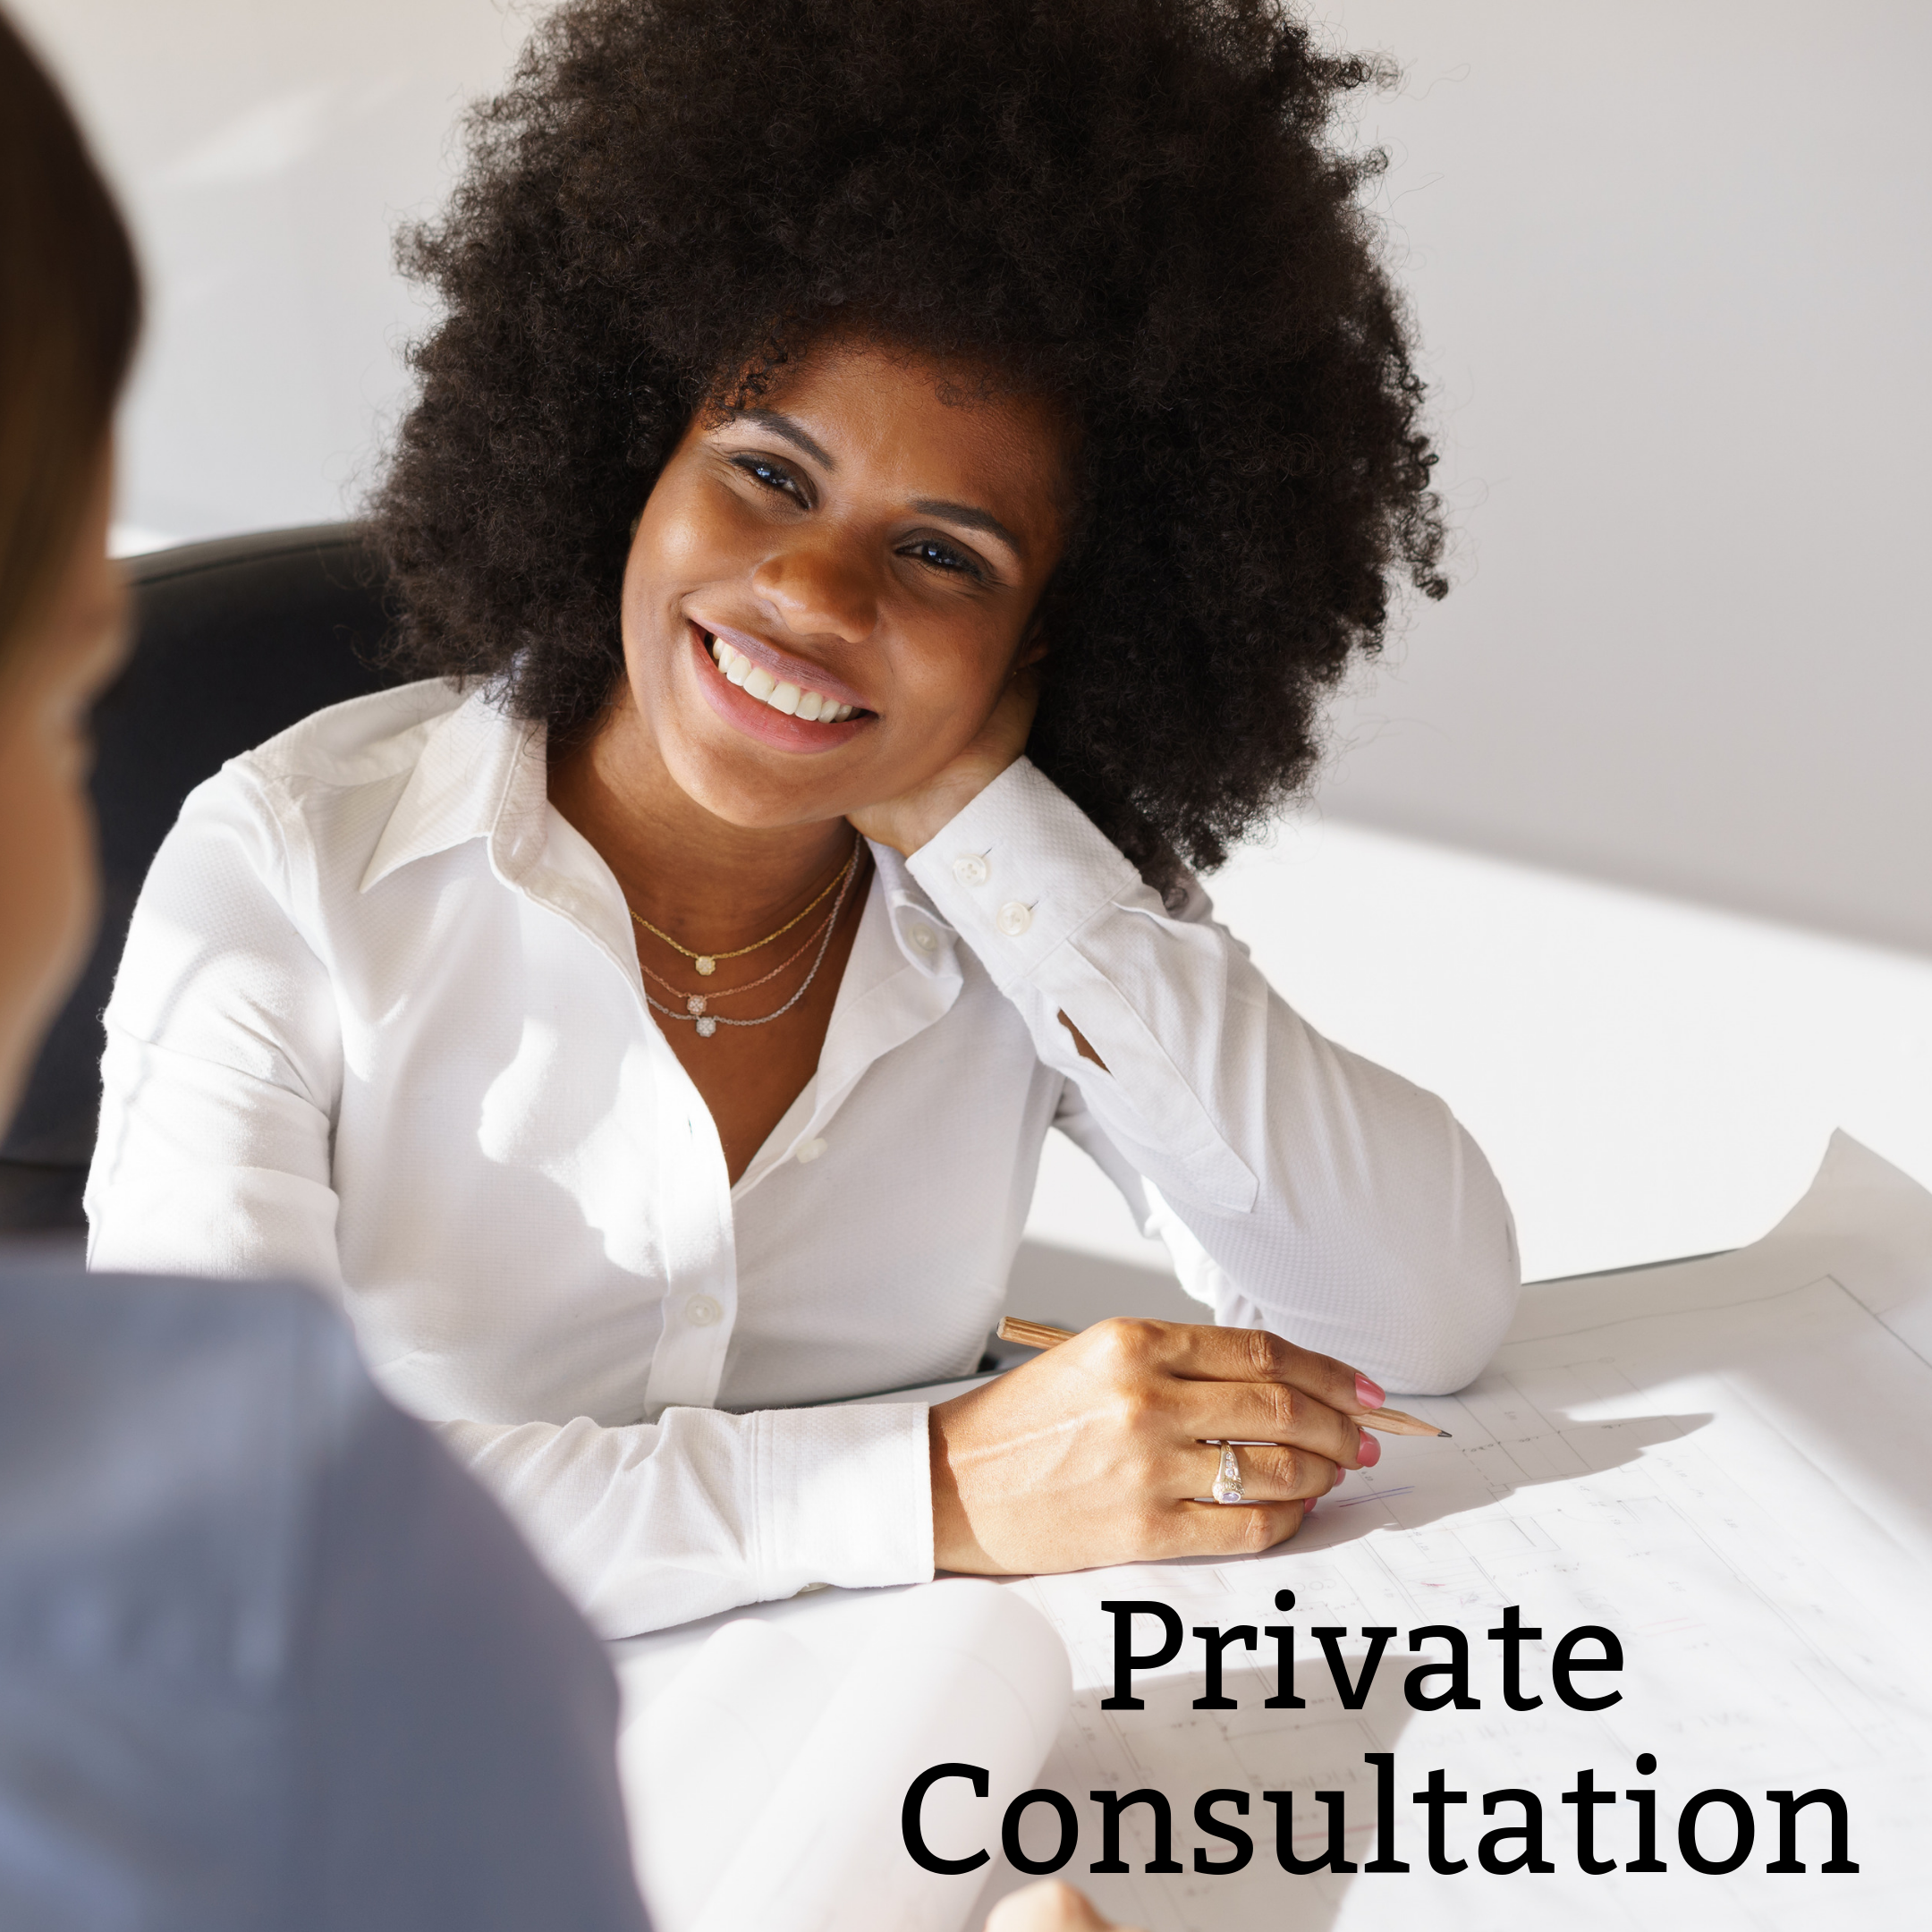 Private consultation - Private Consultations are open-ended sessions on your preferred topic(s). These consultations are scheduled in 45-minute intervals.